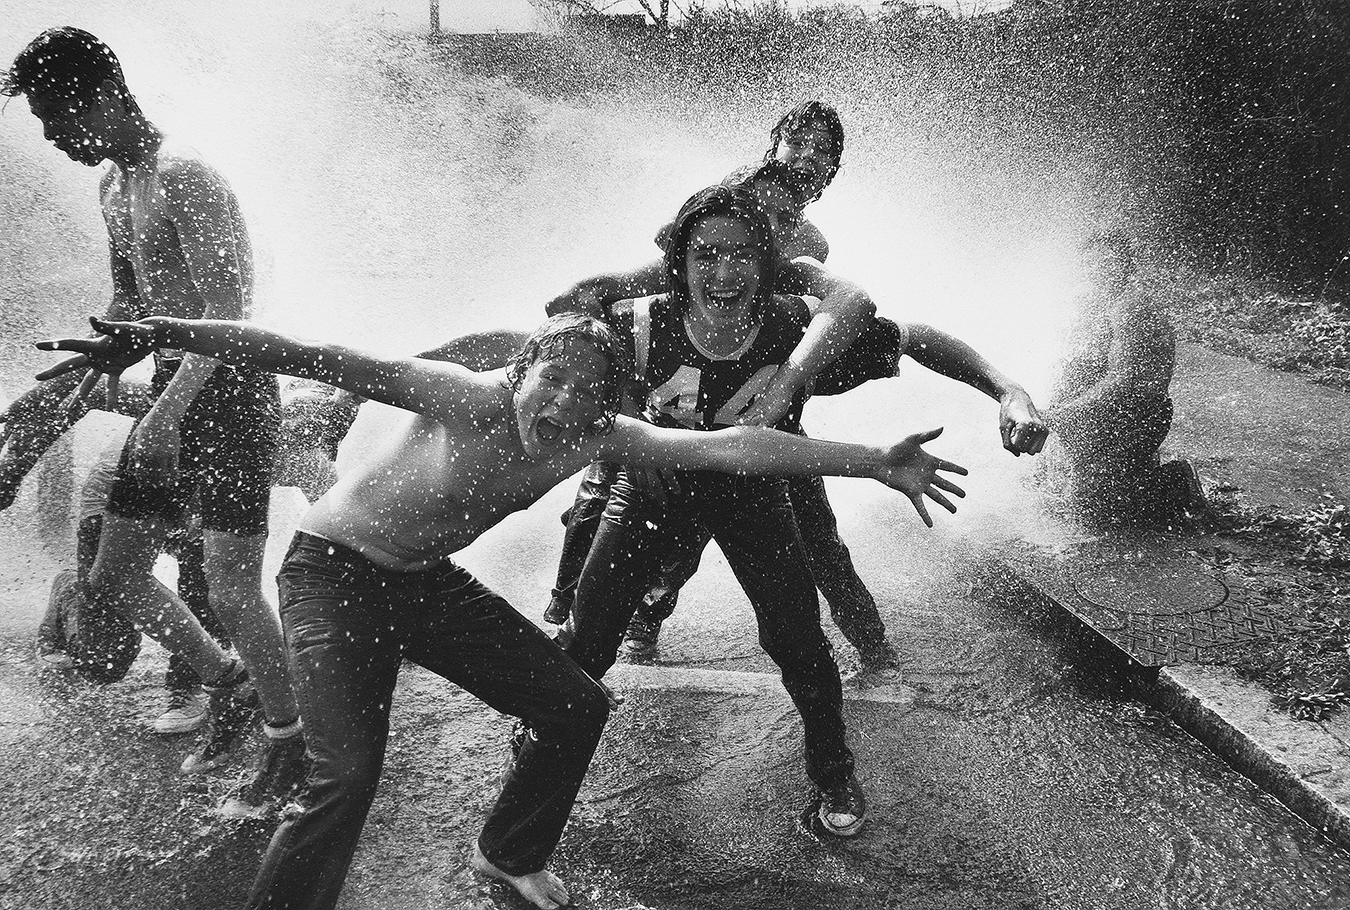 Tony_Ward_photography_fire_hydron_cooling_off_kids_playing_hot_summer_day_Northeast_Philadelphia_wet_jeans_fire_hydron